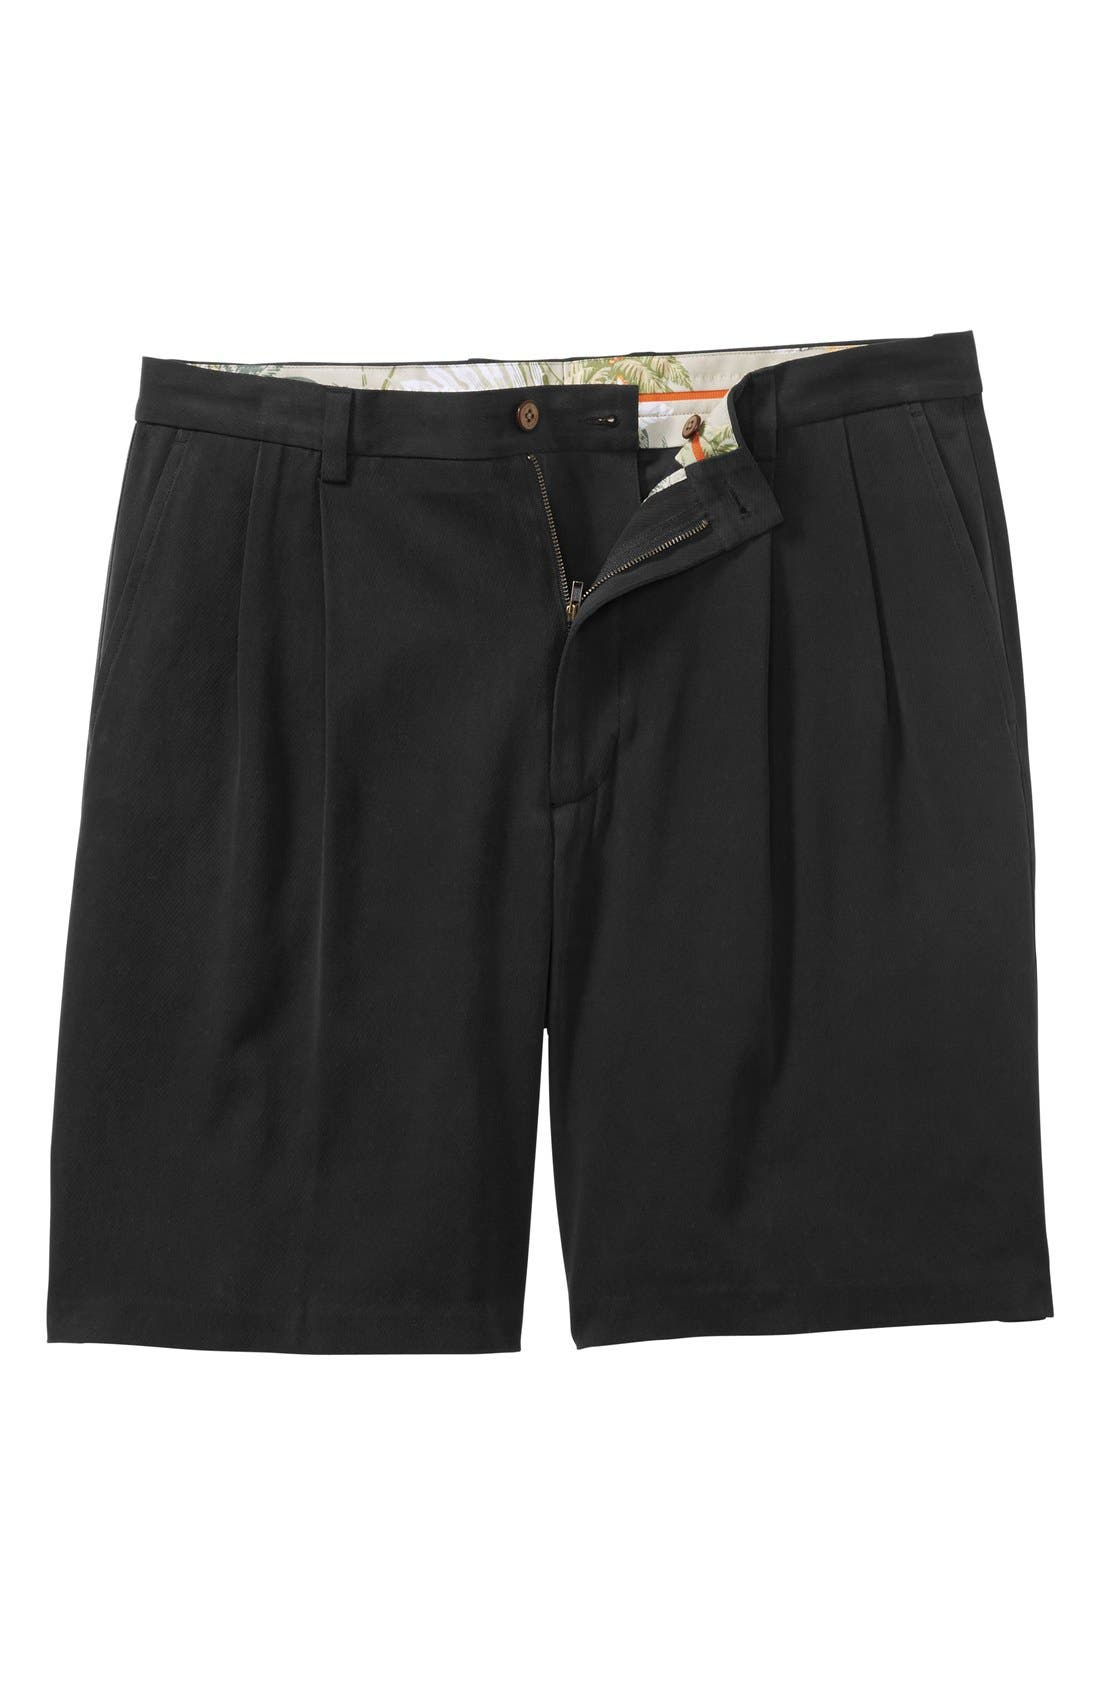 St. Thomas Pleated Shorts,                             Alternate thumbnail 3, color,                             001